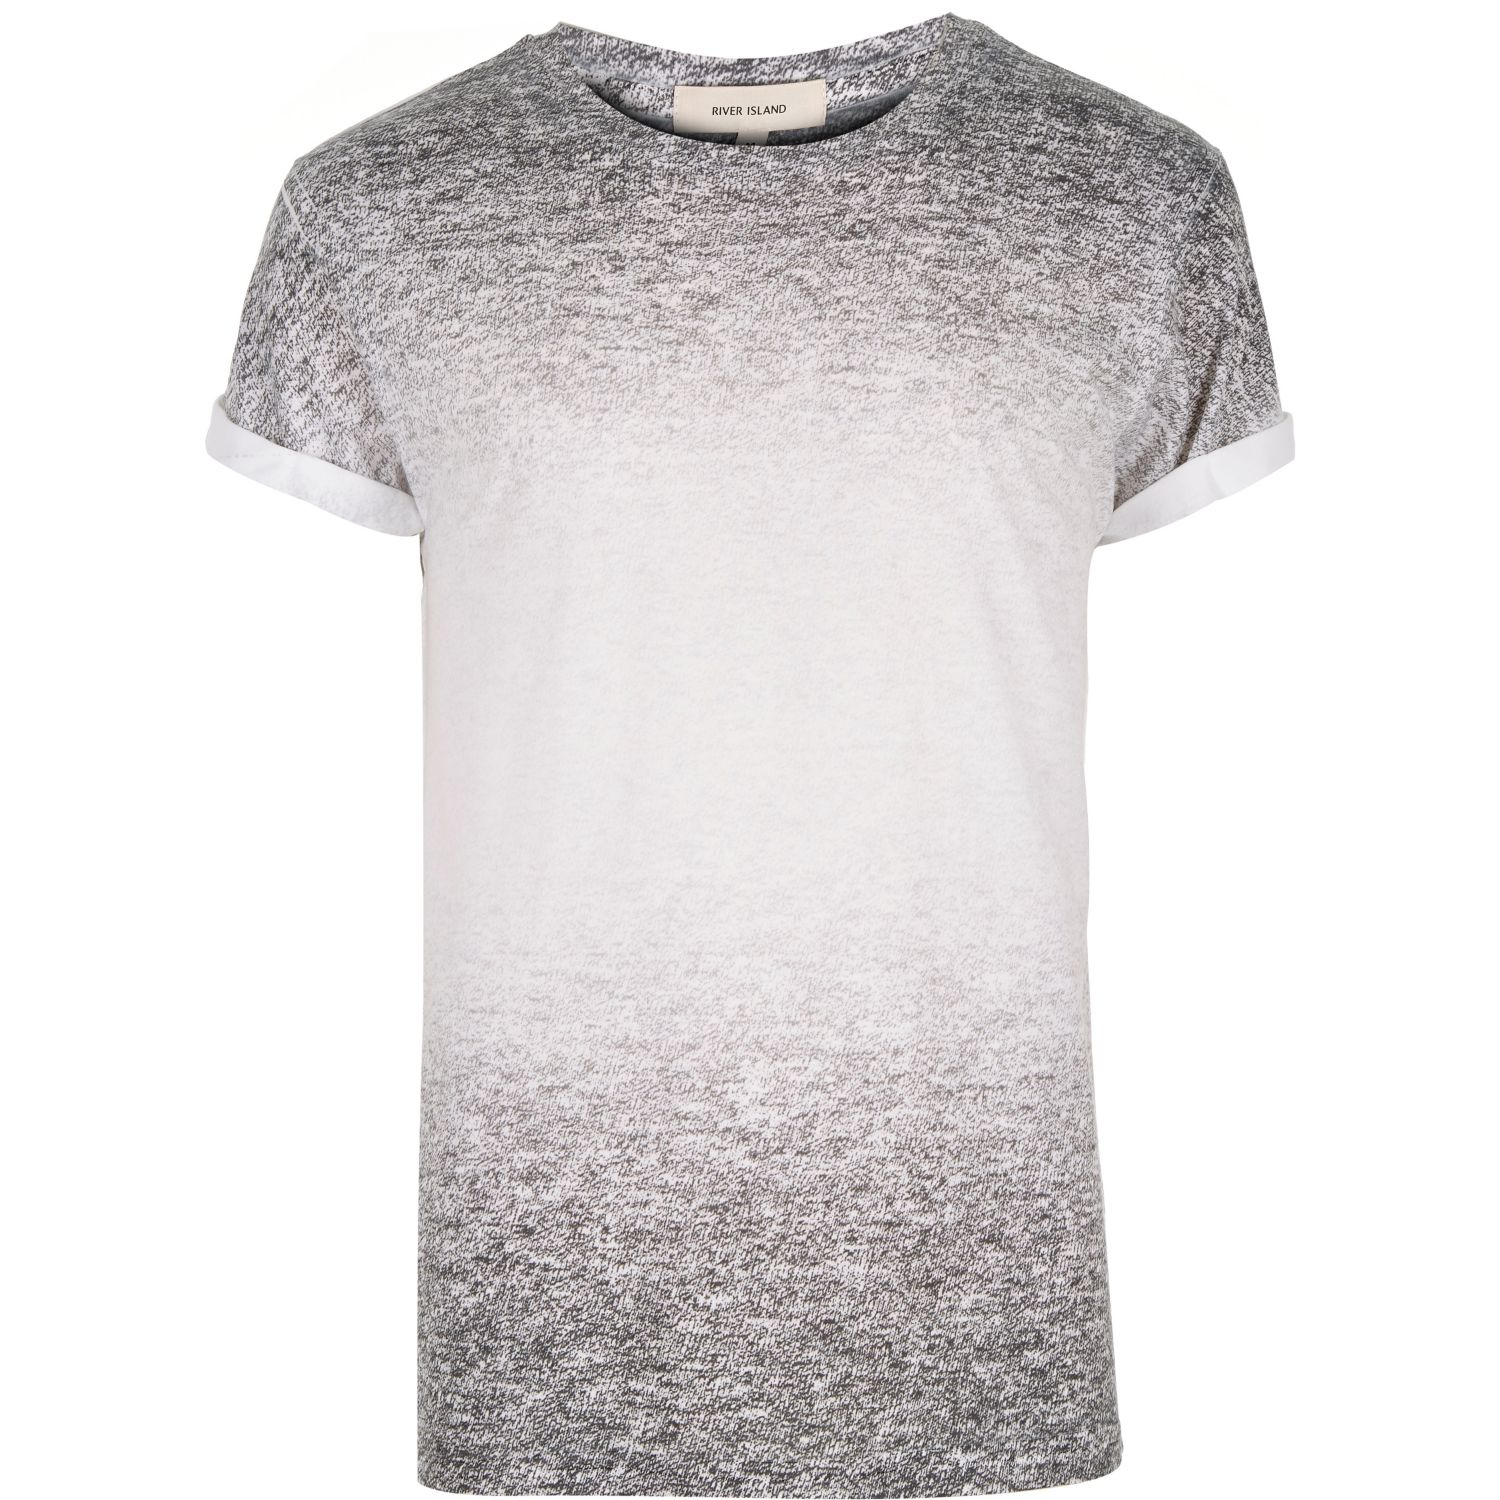 River island grey textured faded t shirt in gray for men for Faded color t shirts